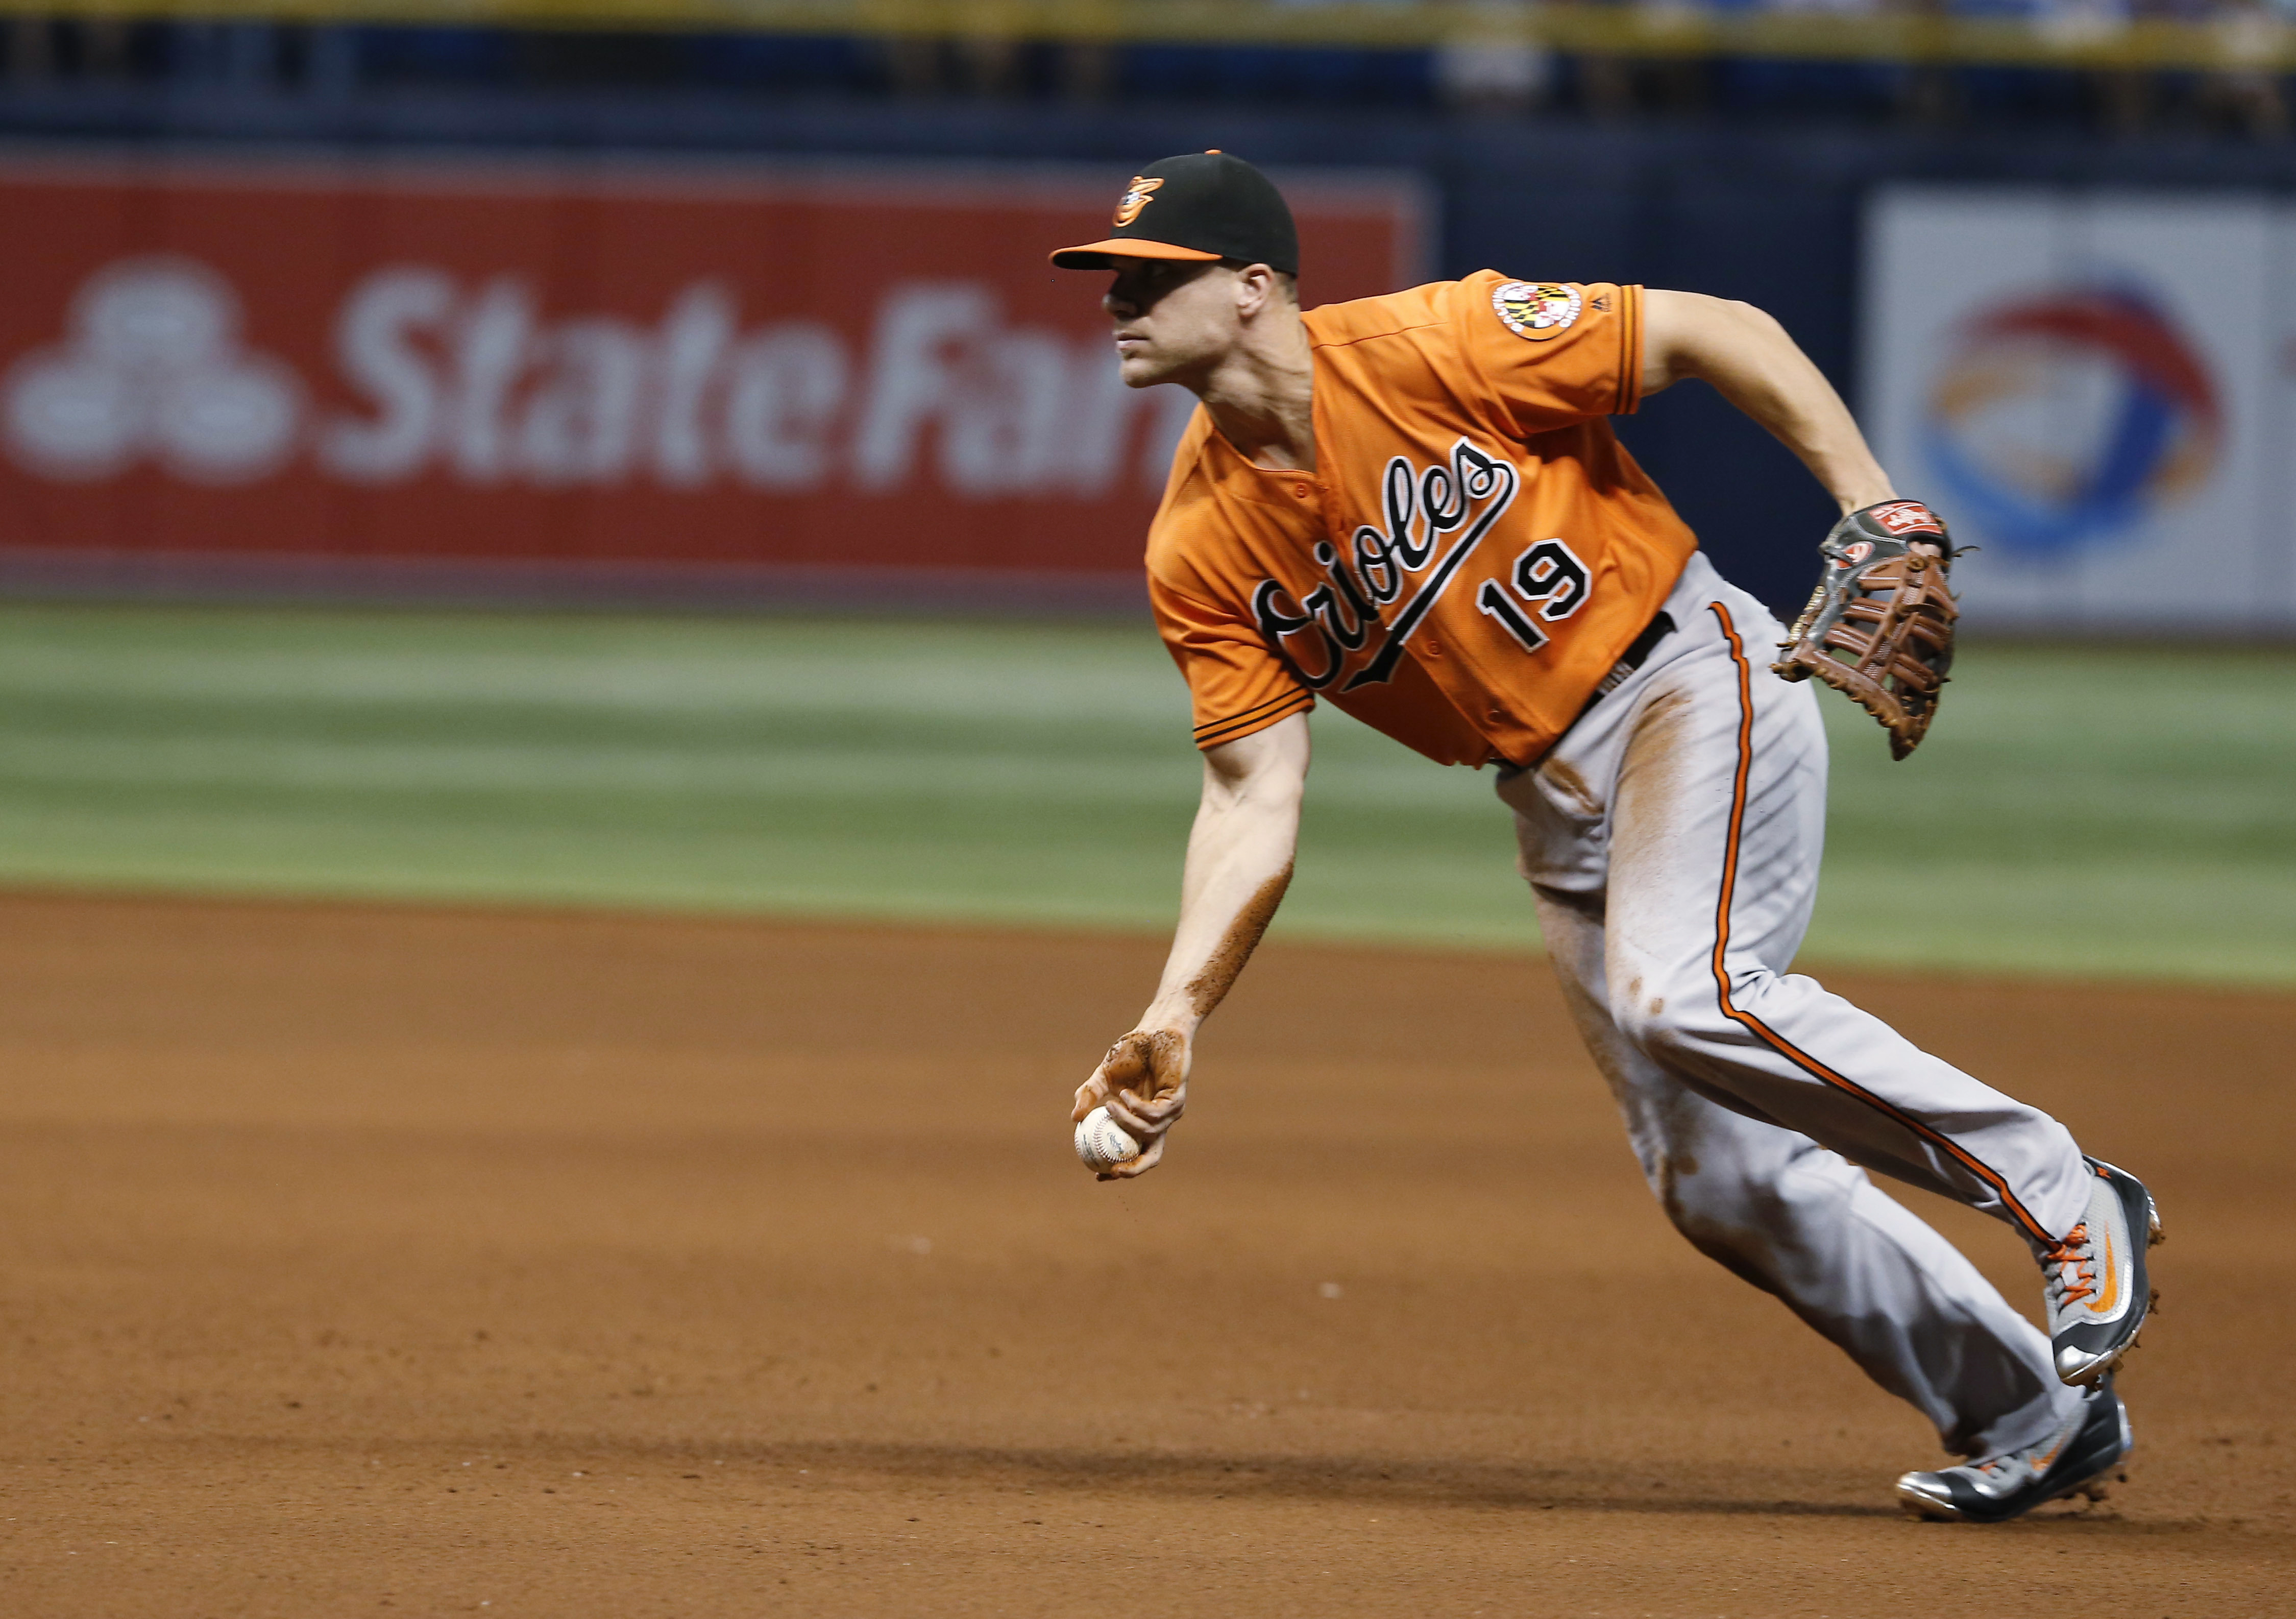 Baltimore Orioles first baseman Chris Davis tosses to first for the out on Tampa Bay Rays' Brad Miller during the eighth inning of a baseball game Saturday, July 16, 2016, in St. Petersburg, Fla. The Orioles won 2-1. (AP Photo/Reinhold Matay)